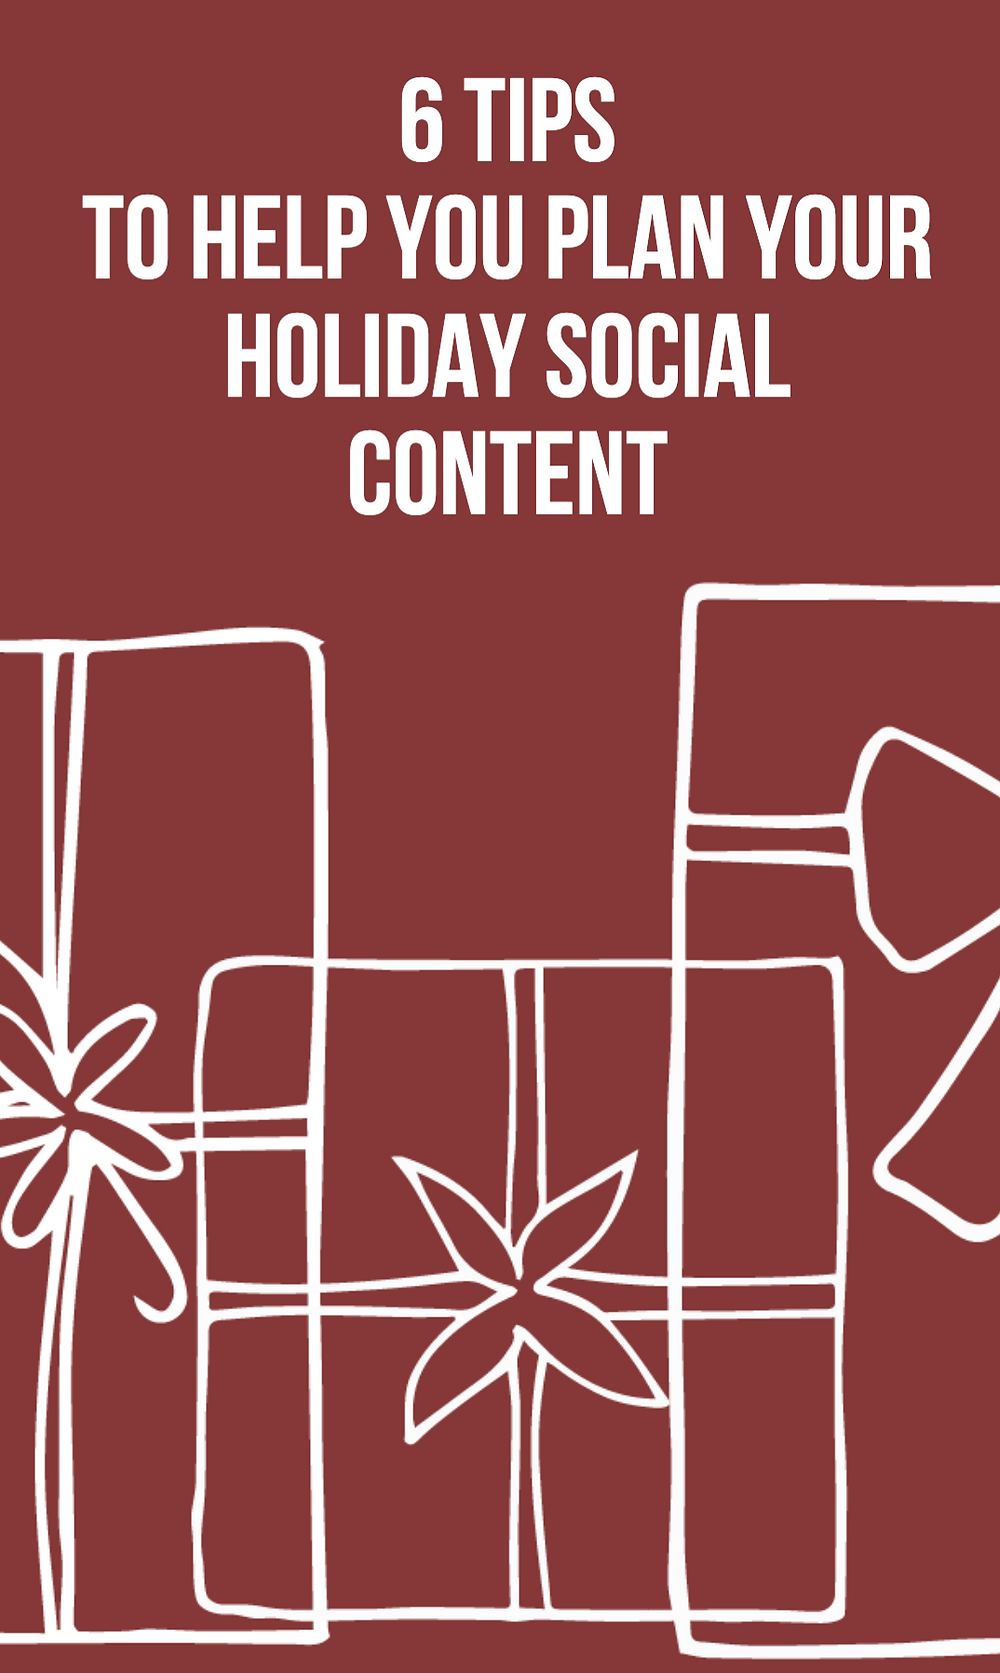 6 tips to help you plan your holiday social media content